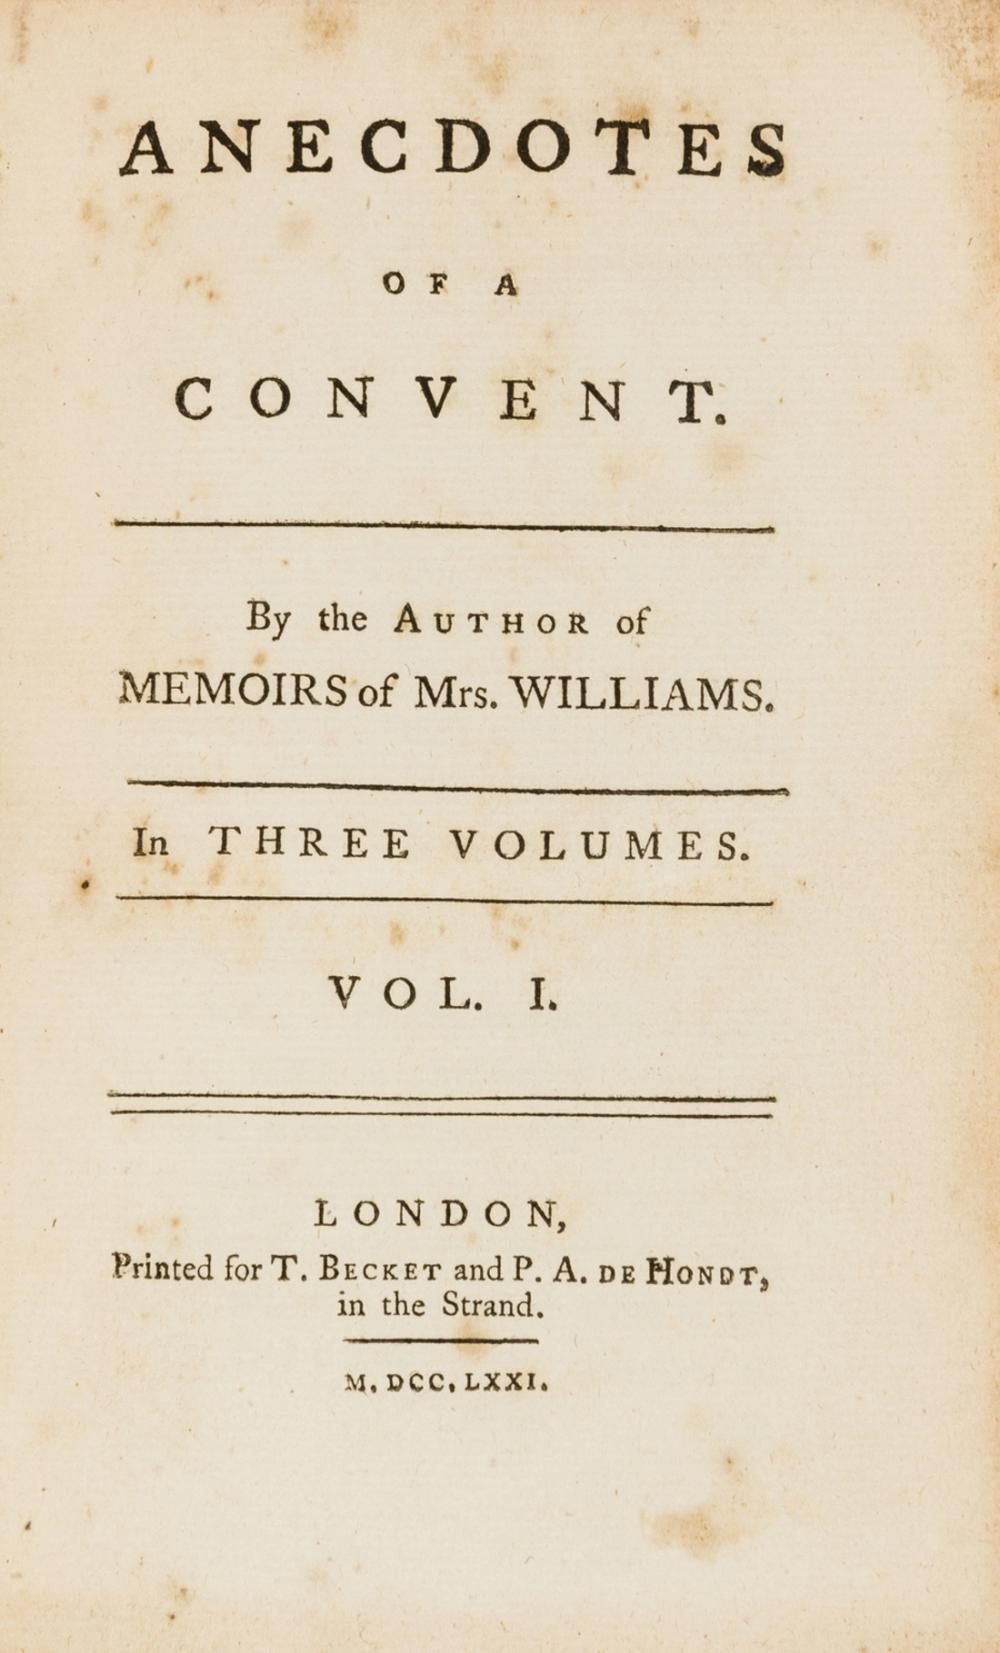 Lesbianism in a convent.- , Anecdotes of a convent. By the author of Memoirs of Miss Williams, 3 vol., first edition, T. Becket and P.A. de Hondt, 1771.